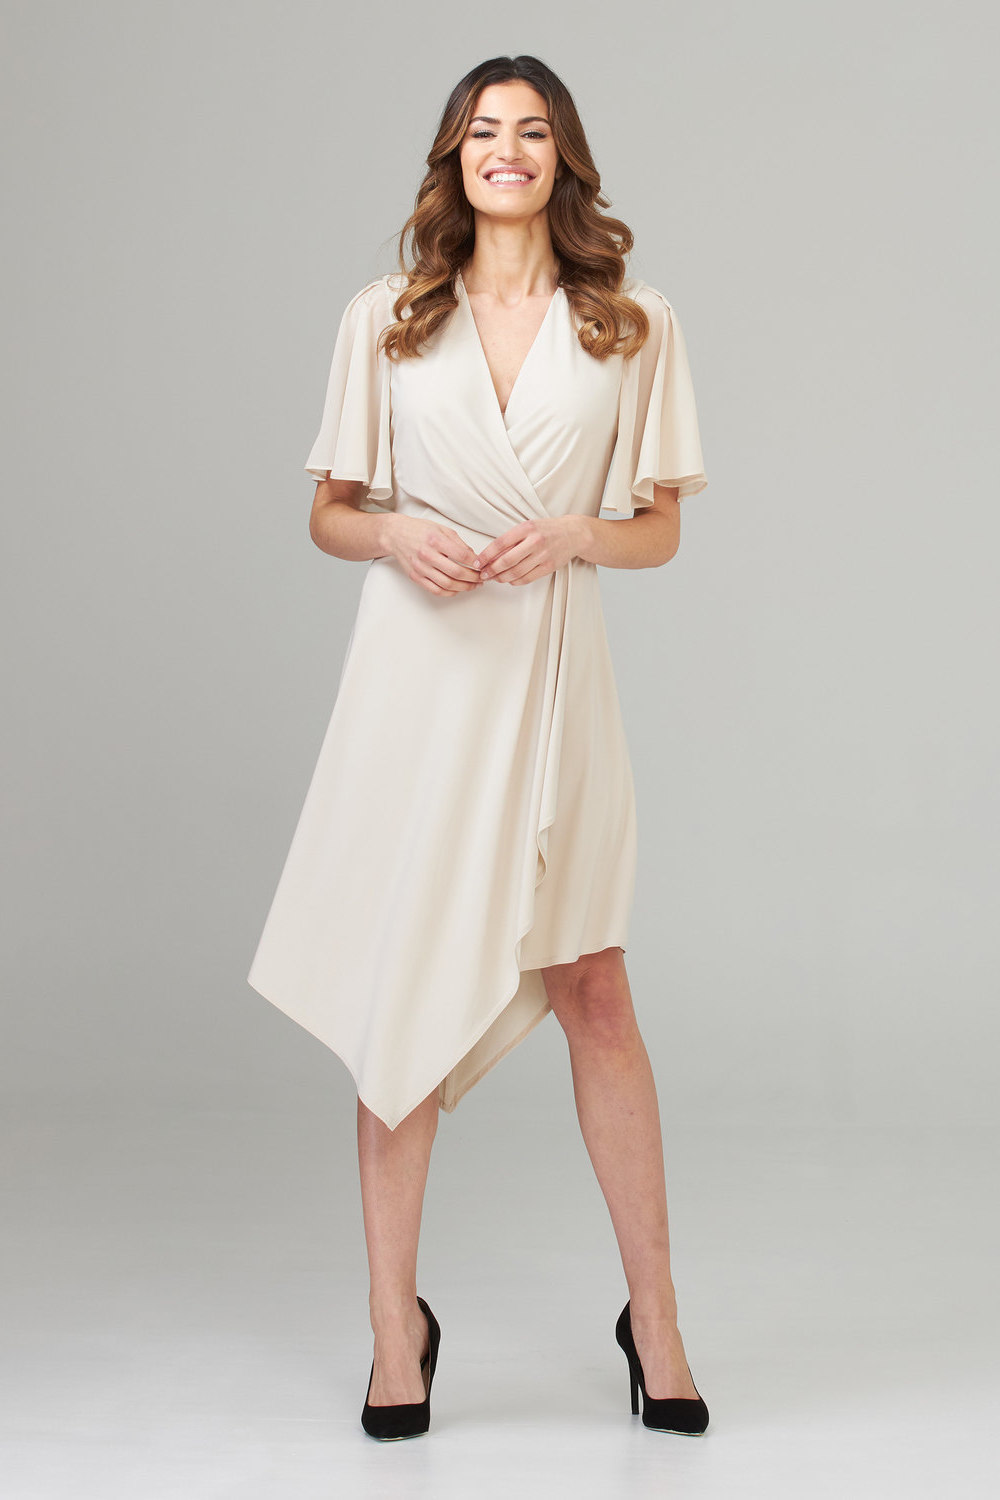 Joseph Ribkoff Robes Champagne 171 Style 201262